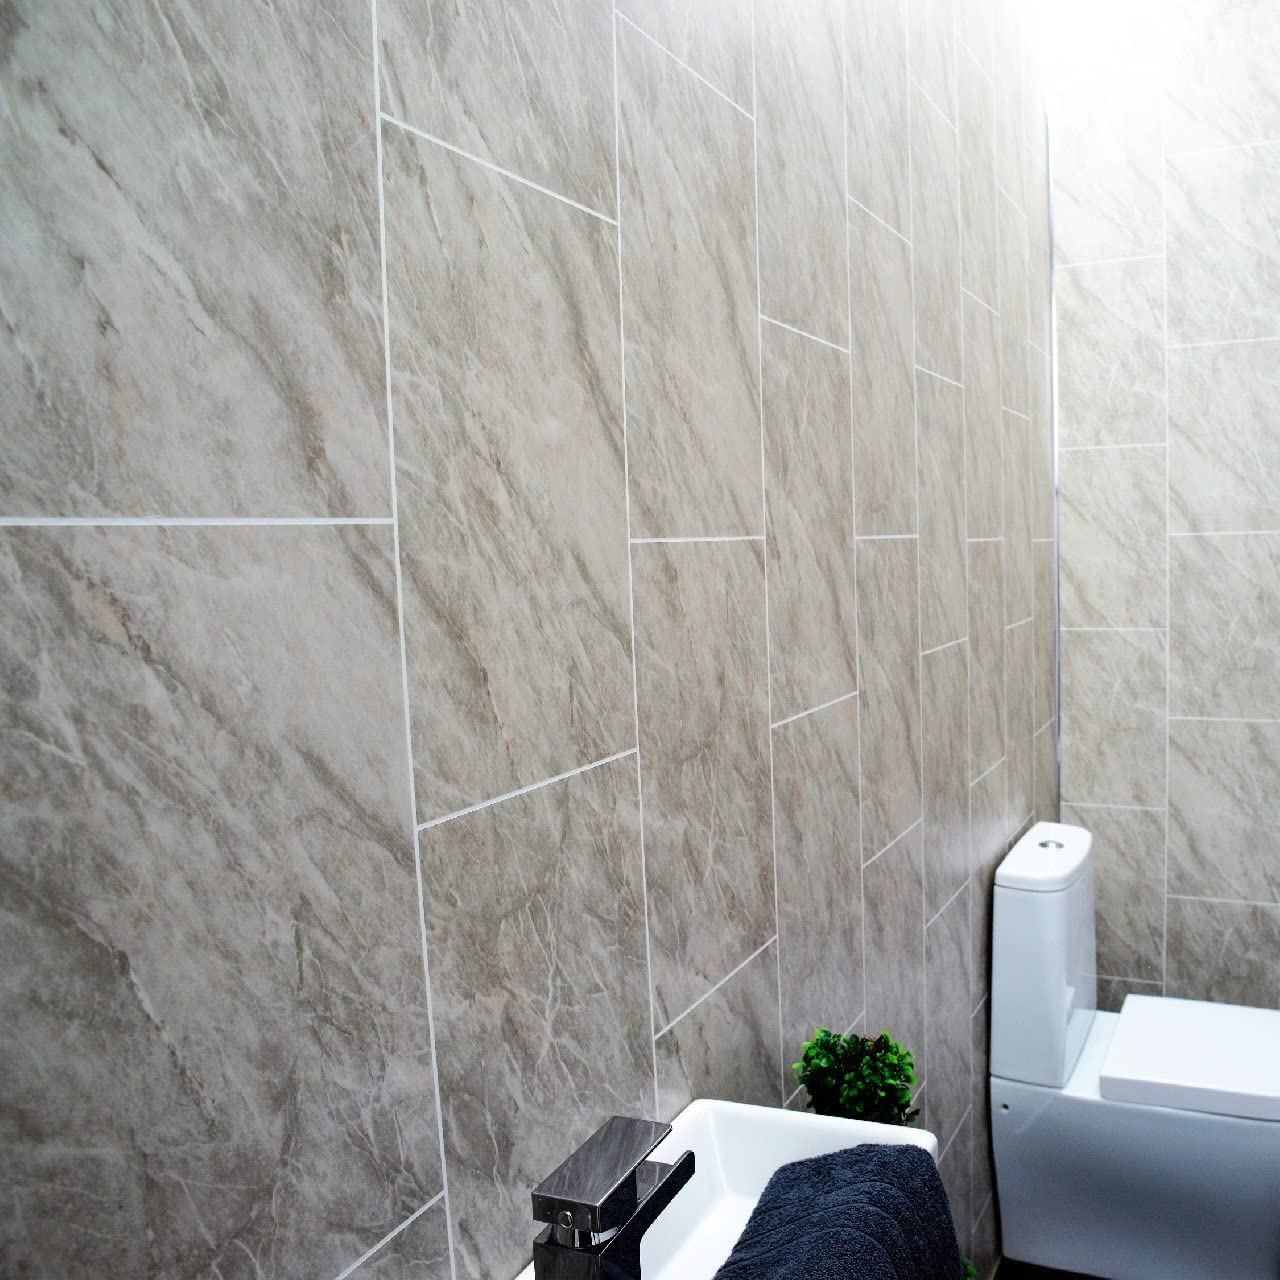 Grey Marble Bathroom Wall Panels Splashbacks Tile Effect Cladding Used In Kitchen Office Ceiling And Walls Perfect For Wet Walls In Shower Pvc Plastic 100 Waterproof 29 Panels Amazon Co Uk Diy Tools